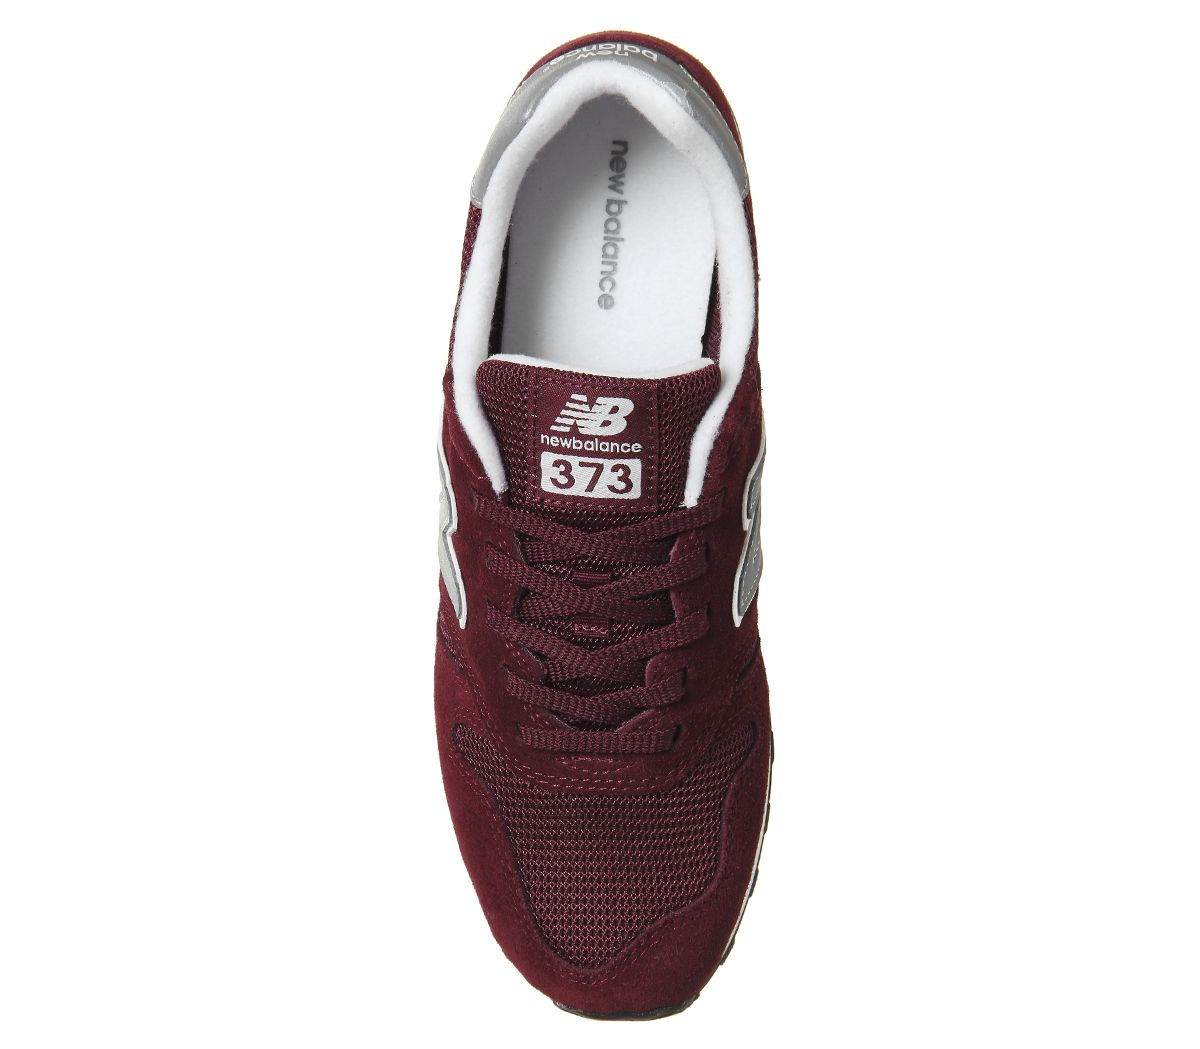 competitive price b5cea 4bcf3 Details about Mens New Balance 373 Burgundy Silver Trainers Shoes